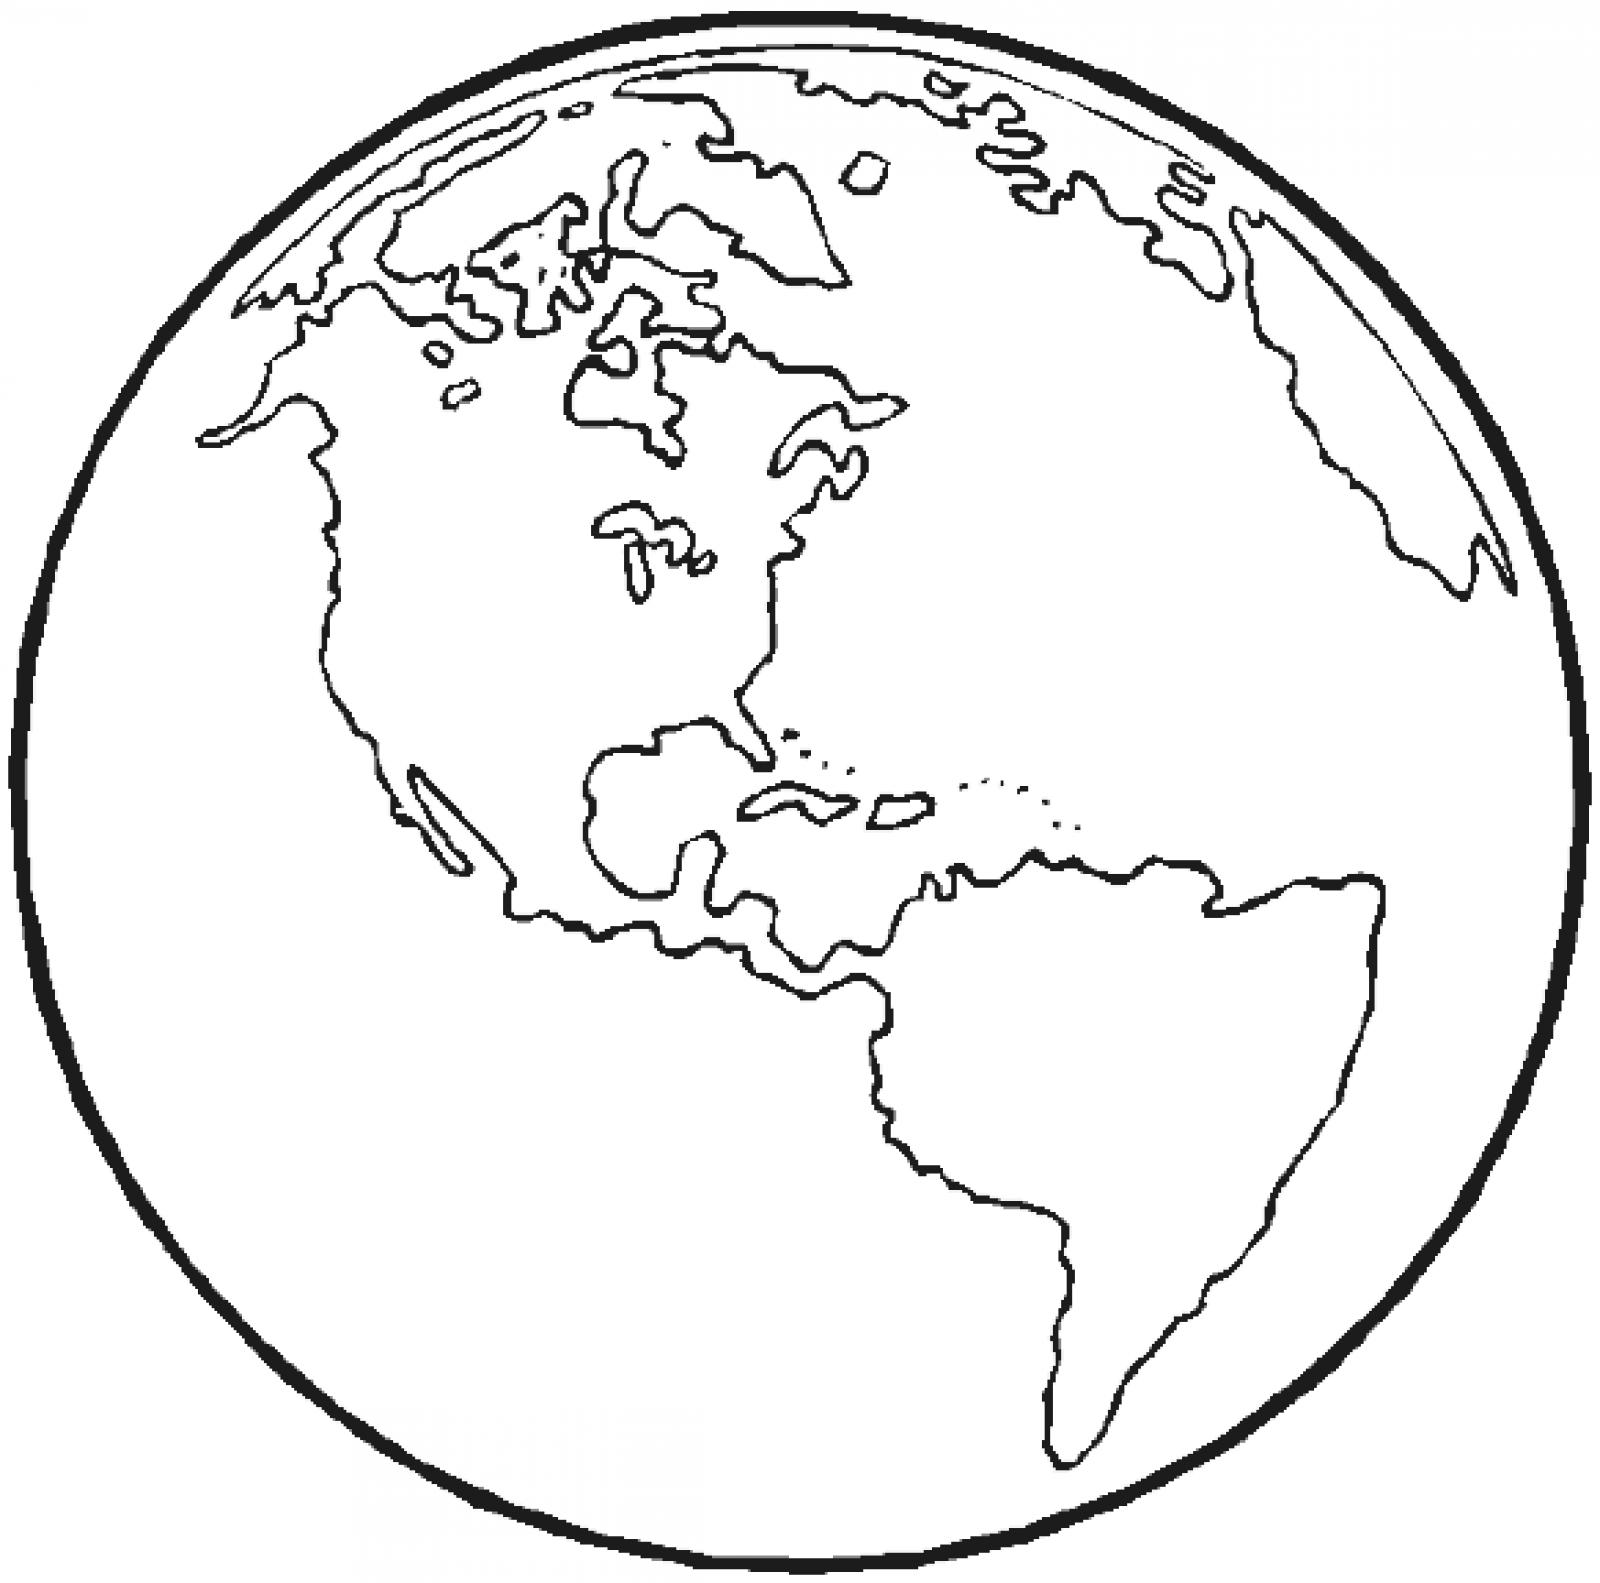 1600x1583 Free Printable Earth Coloring Pages For Kids